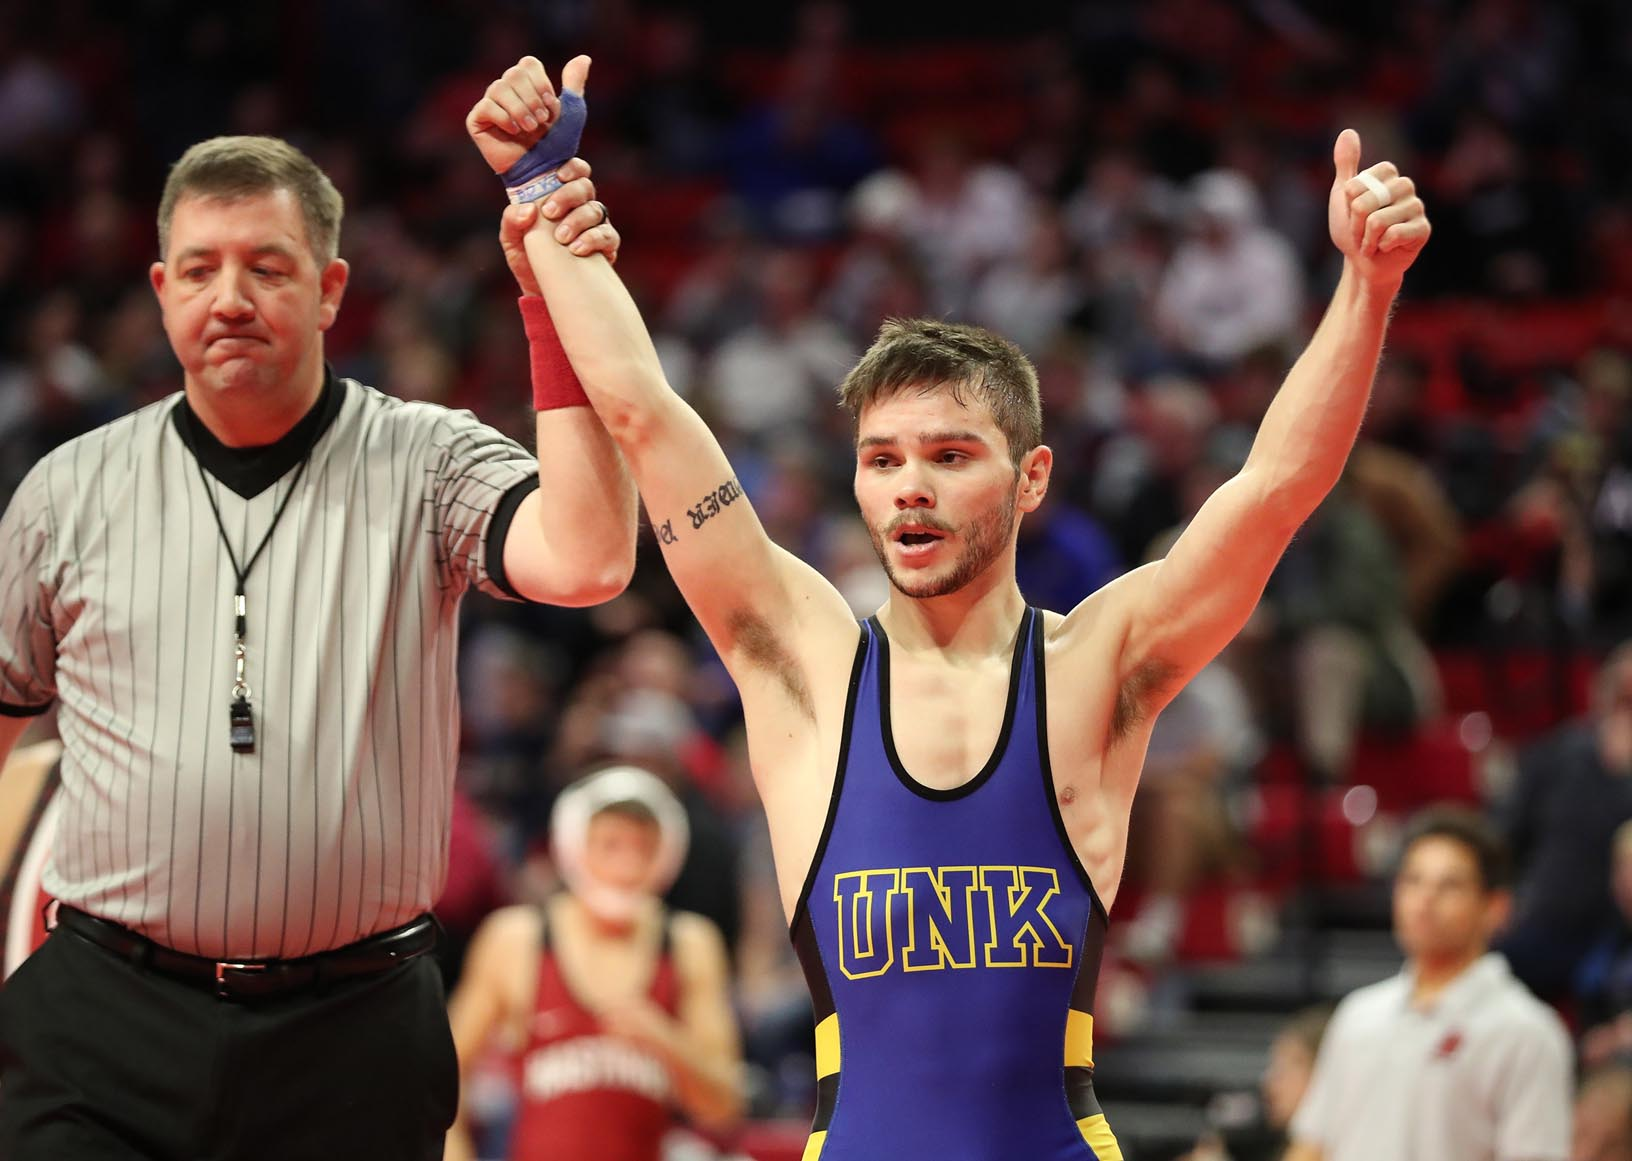 Redshirt junior Josh Portillo is a two-time All-American wrestler for UNK. He finished fifth at the NCAA Division II Championships in 2018 and took second place last year. (Photo by Corbey R. Dorsey, UNK Communications)